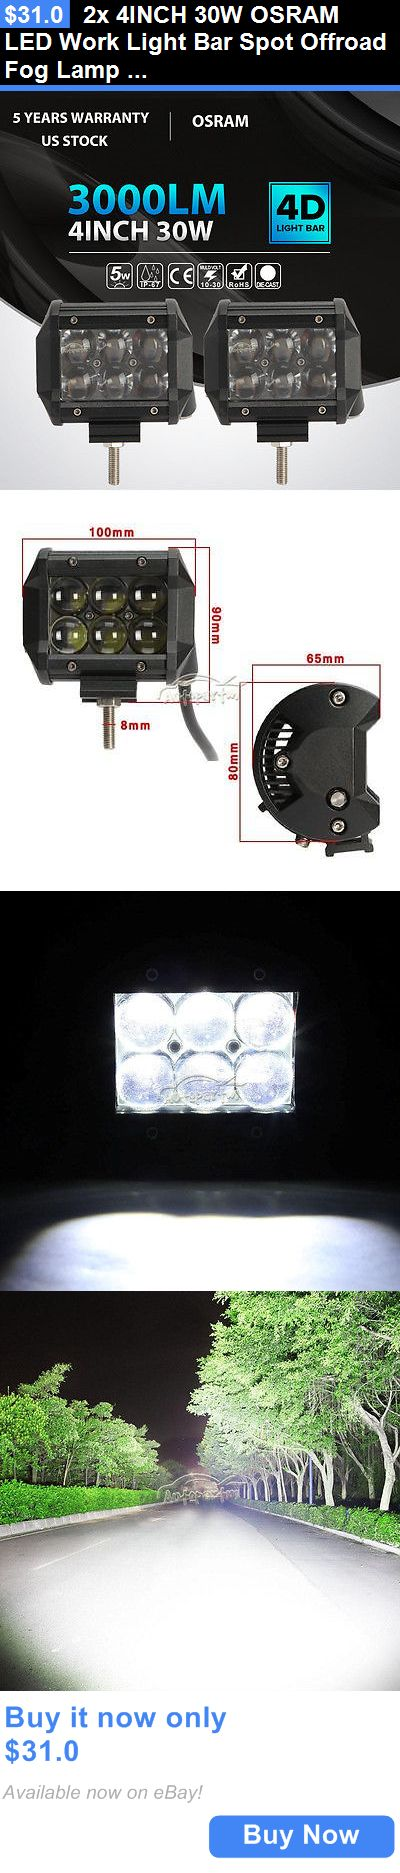 Motors Parts And Accessories: 2X 4Inch 30W Osram Led Work Light Bar Spot Offroad Fog Lamp Pickup Atv Truck BUY IT NOW ONLY: $31.0